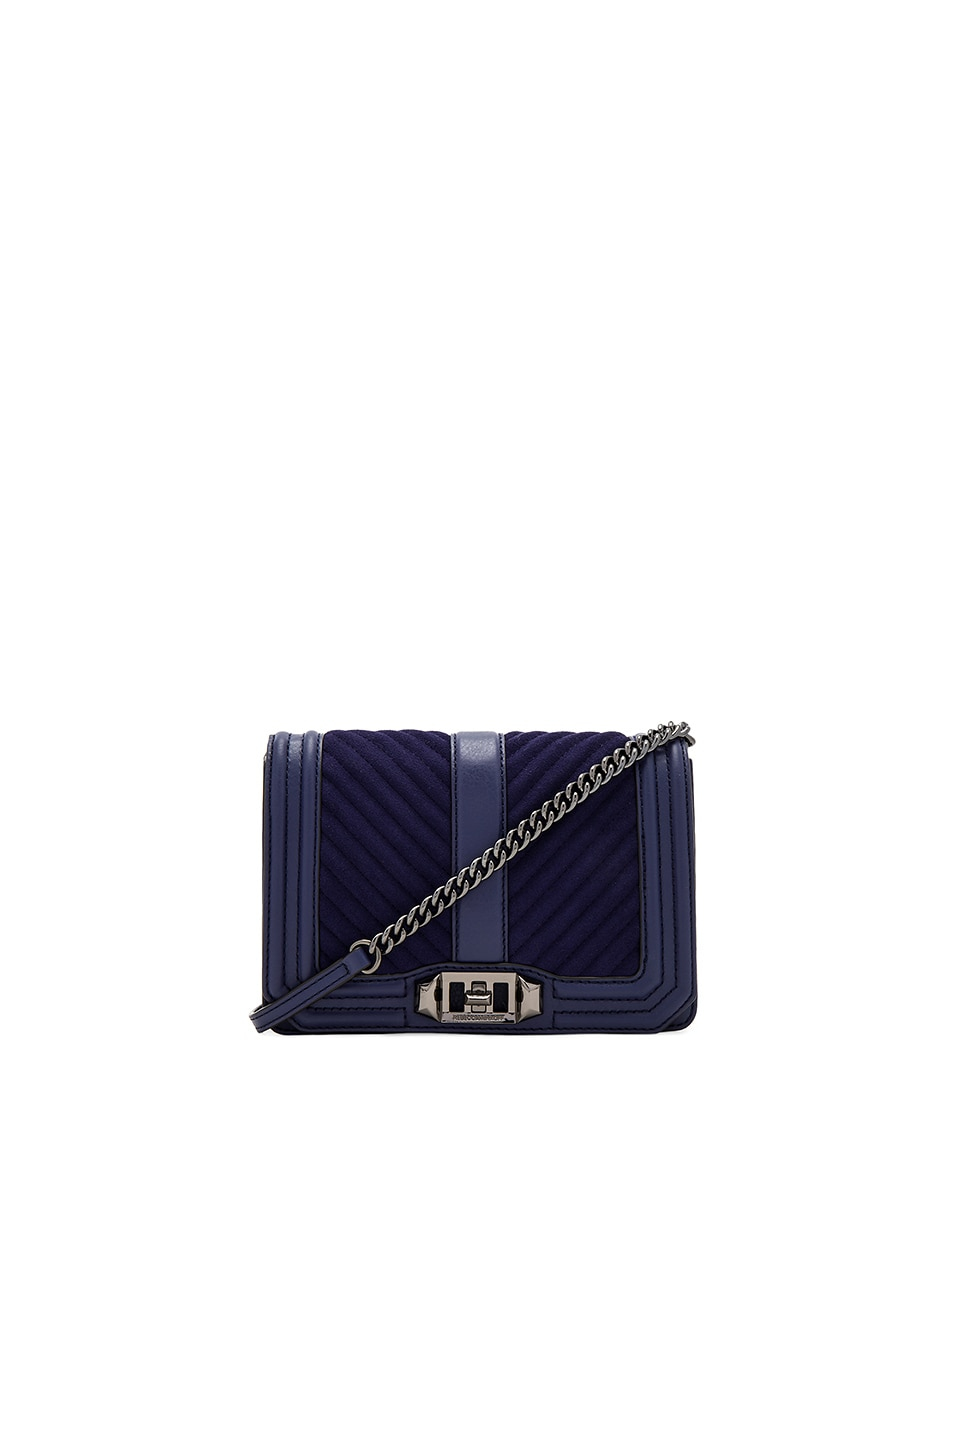 Rebecca Minkoff Chevron Quilt Small Love Bag in Eclipse